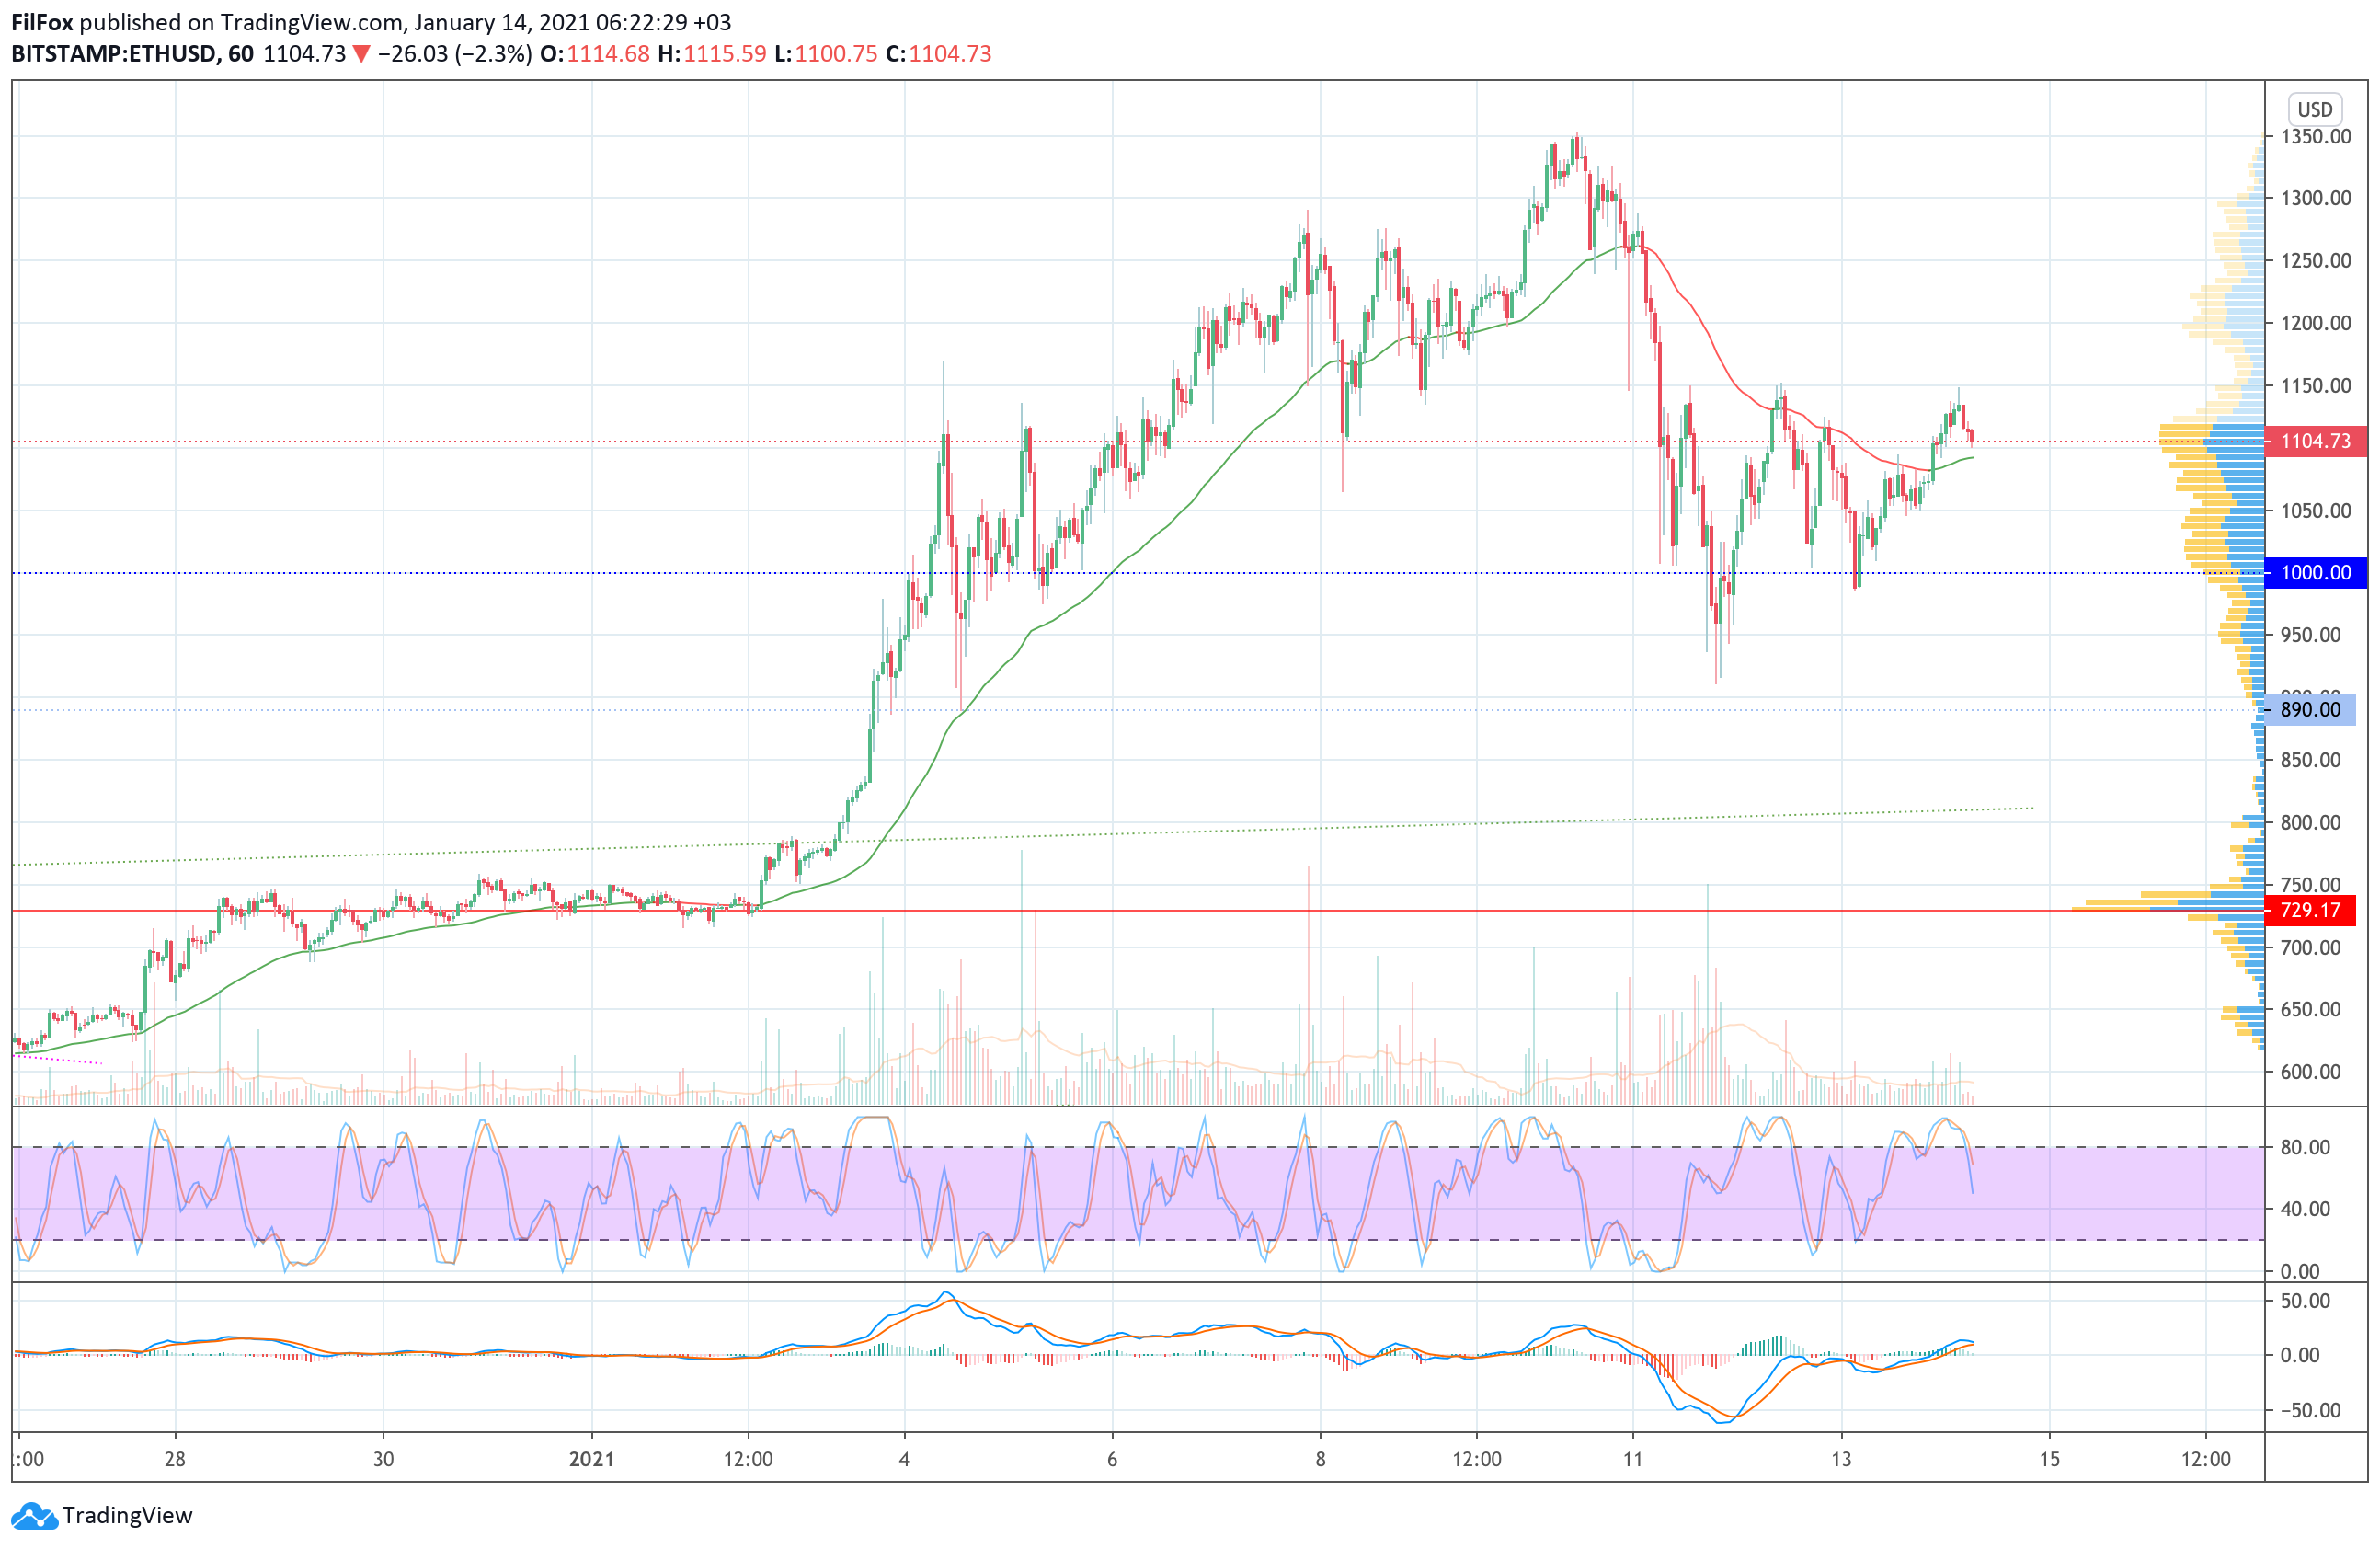 Analysis of prices for Bitcoin, Ethereum, Ripple for 01/14/2021